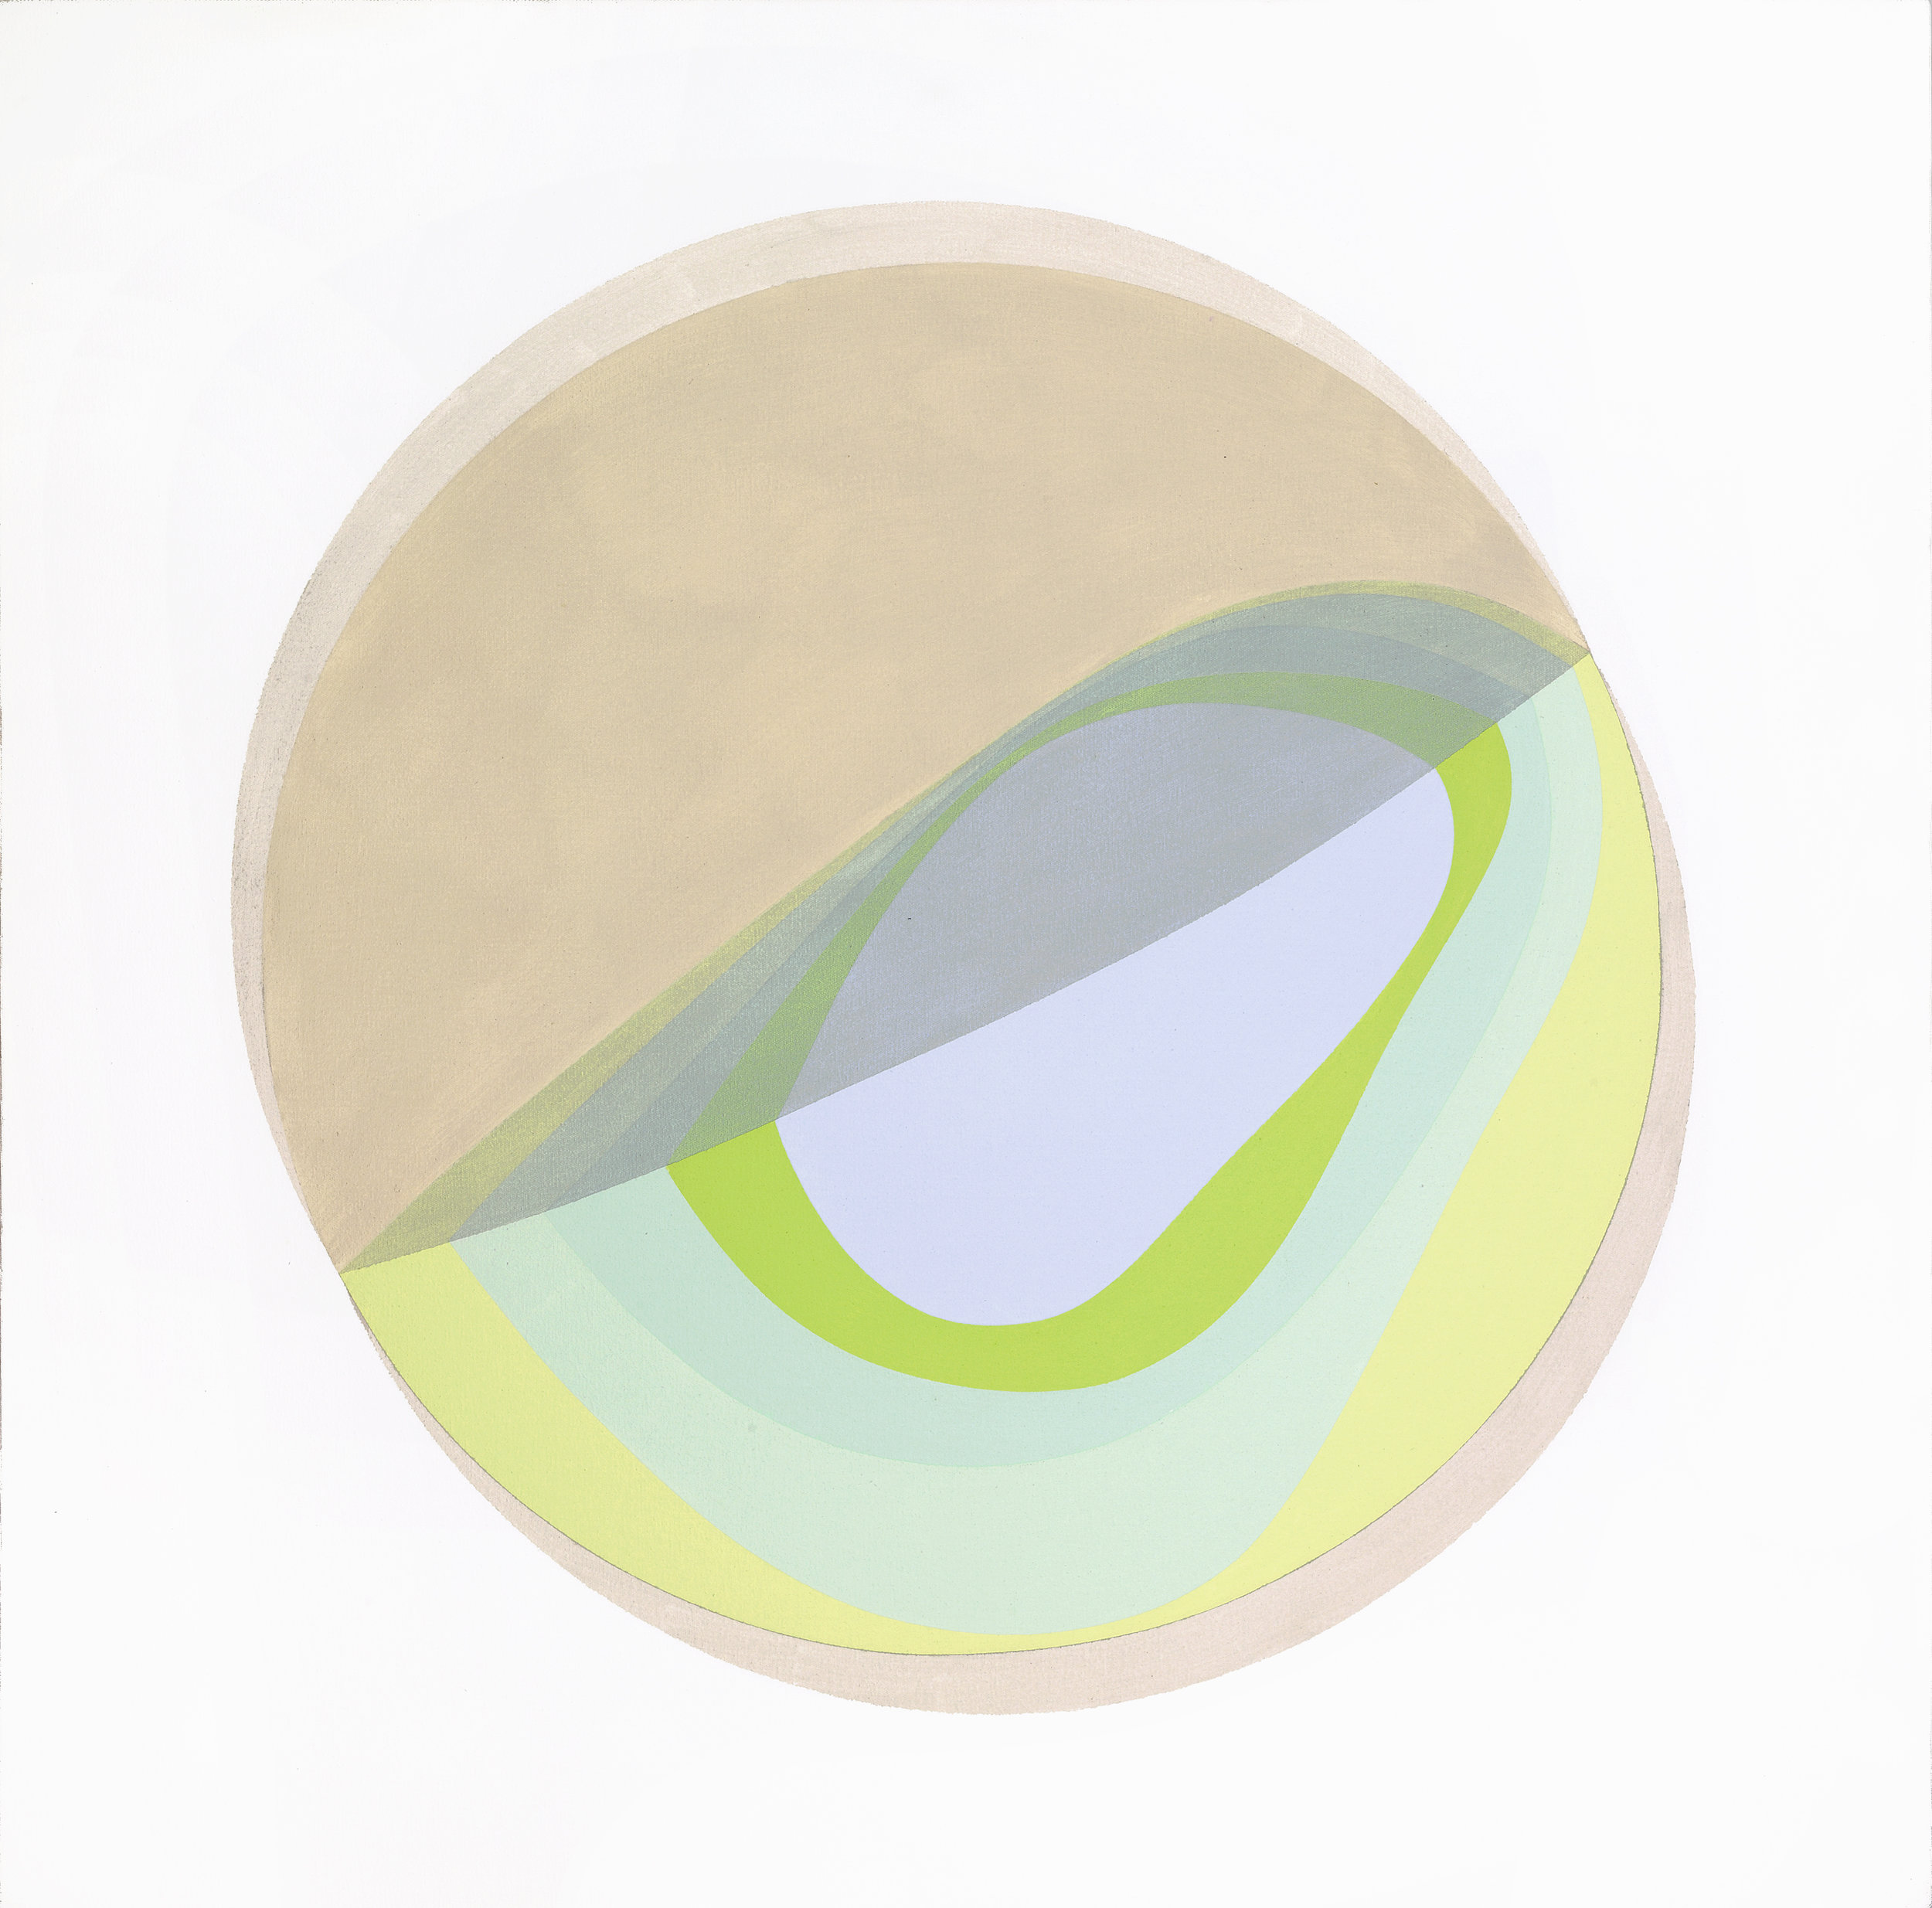 Untitled (Sectioned Planet) , 1969 acrylic on canvas 36 x 36 inches; 91.4 x 91.4 centimeters